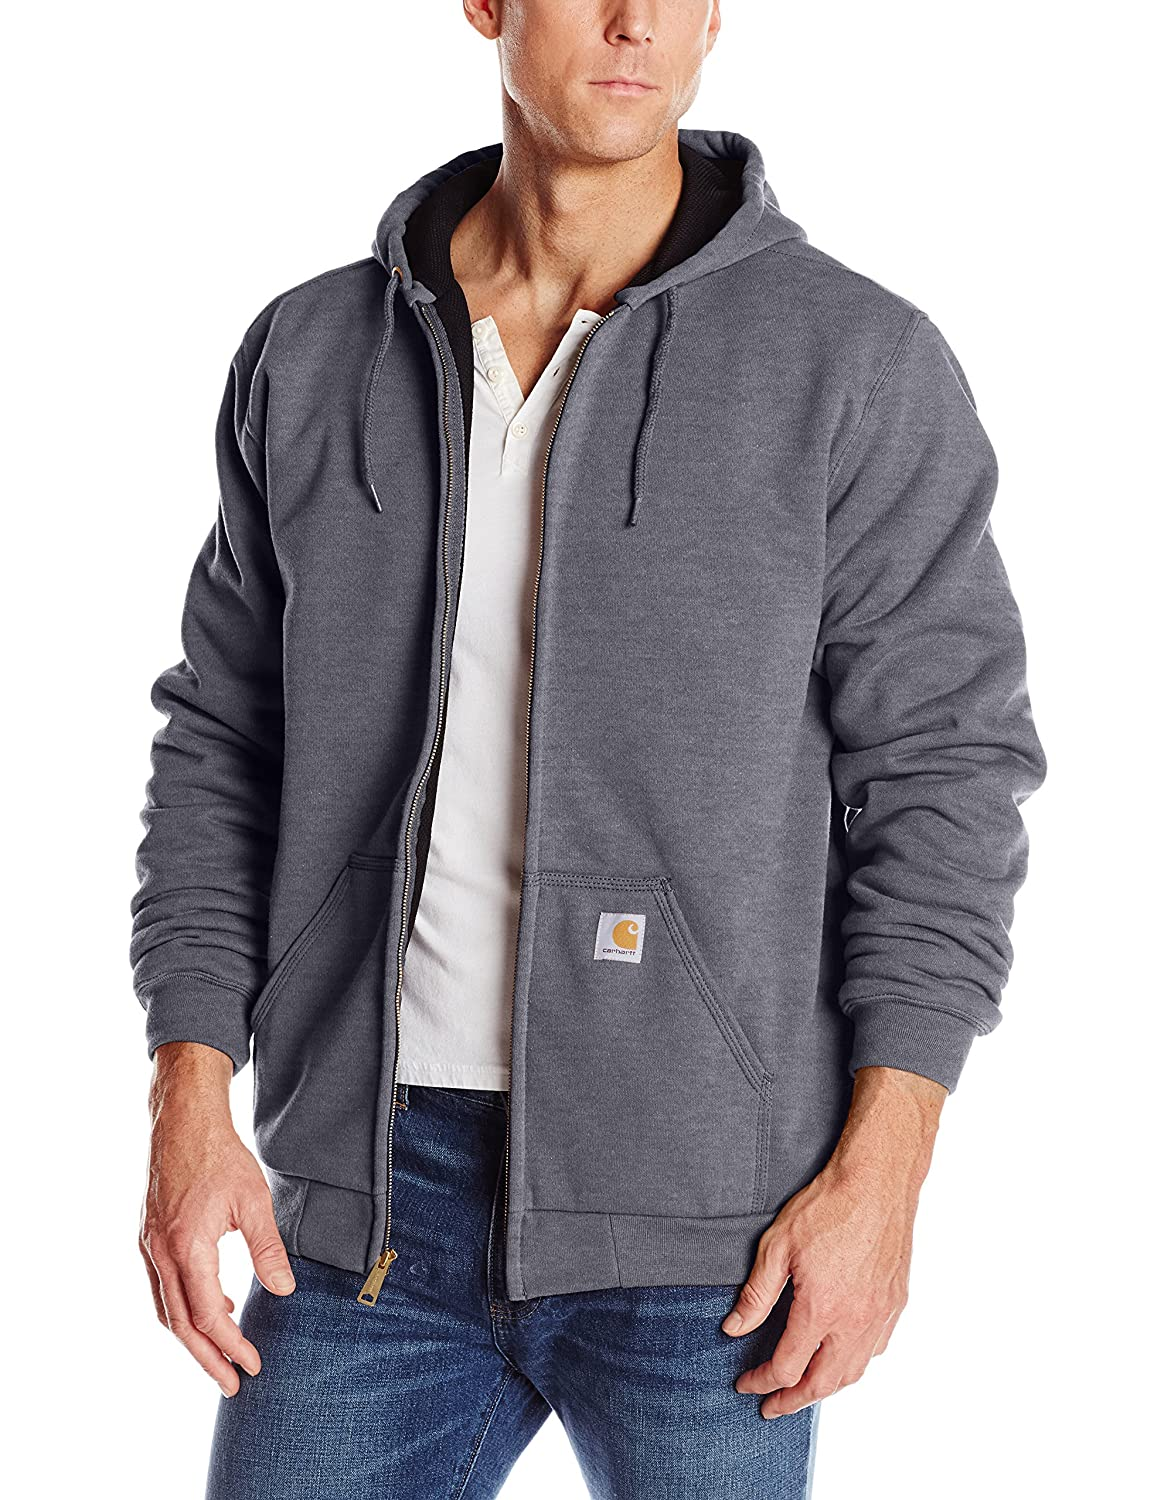 Carhartt Men's Big & Tall Rutland Thermal-Lined Hooded Zip-Front Sweatshirt Carhartt Sportswear - Mens 100632